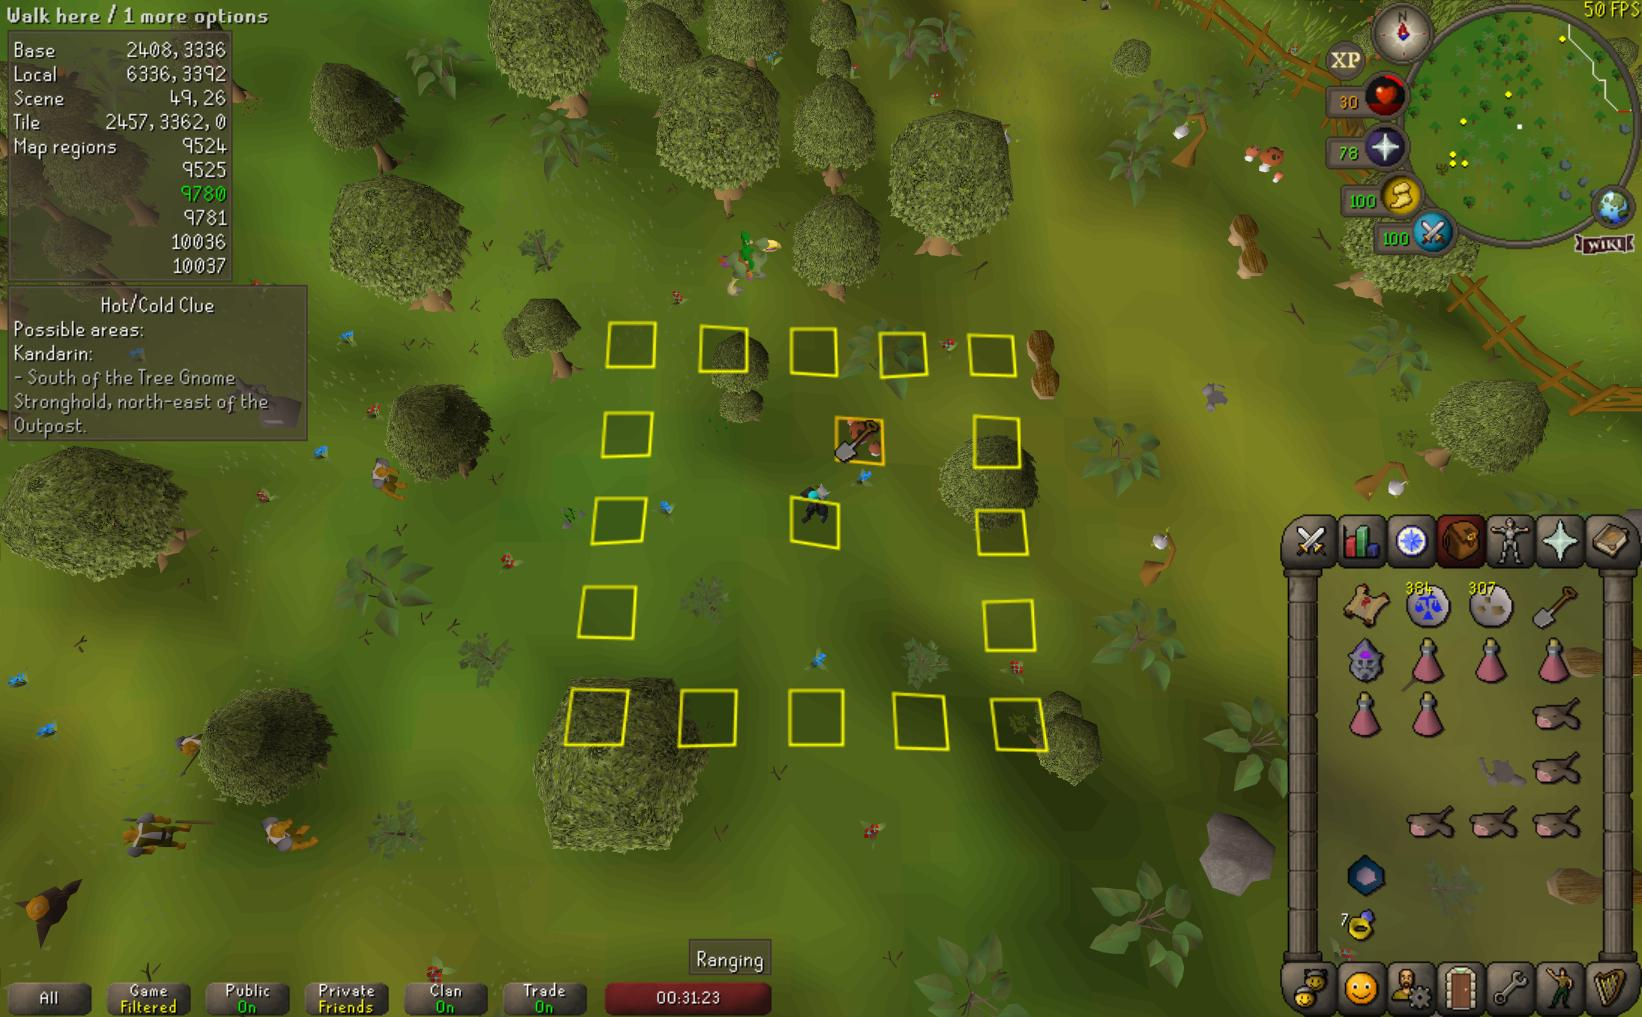 HotColdClues: mega issue for centering dig locations · Issue